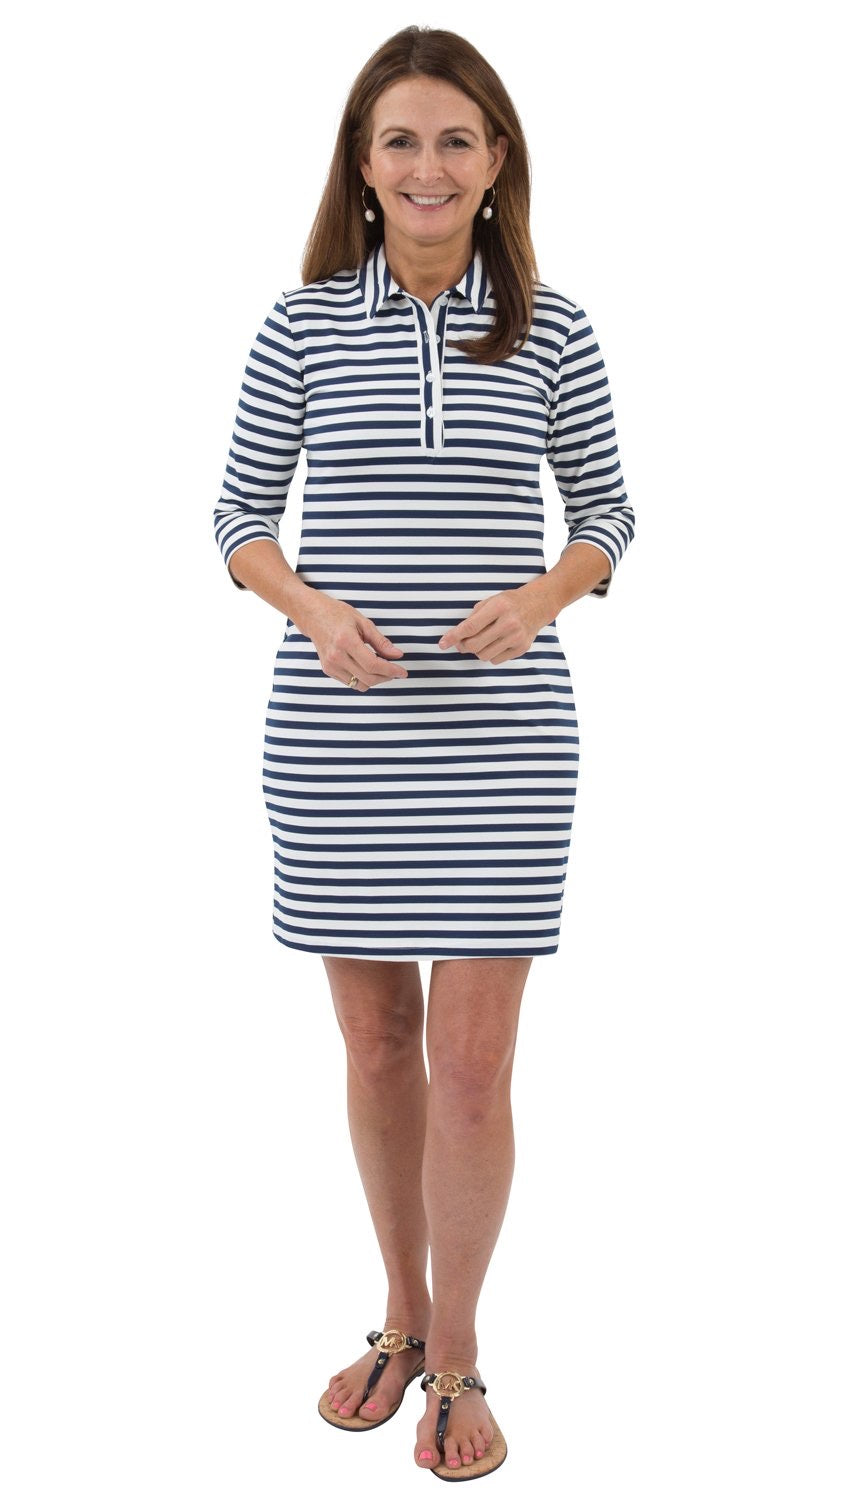 Port Dress in Navy/White Stripe by Sailor Sailor